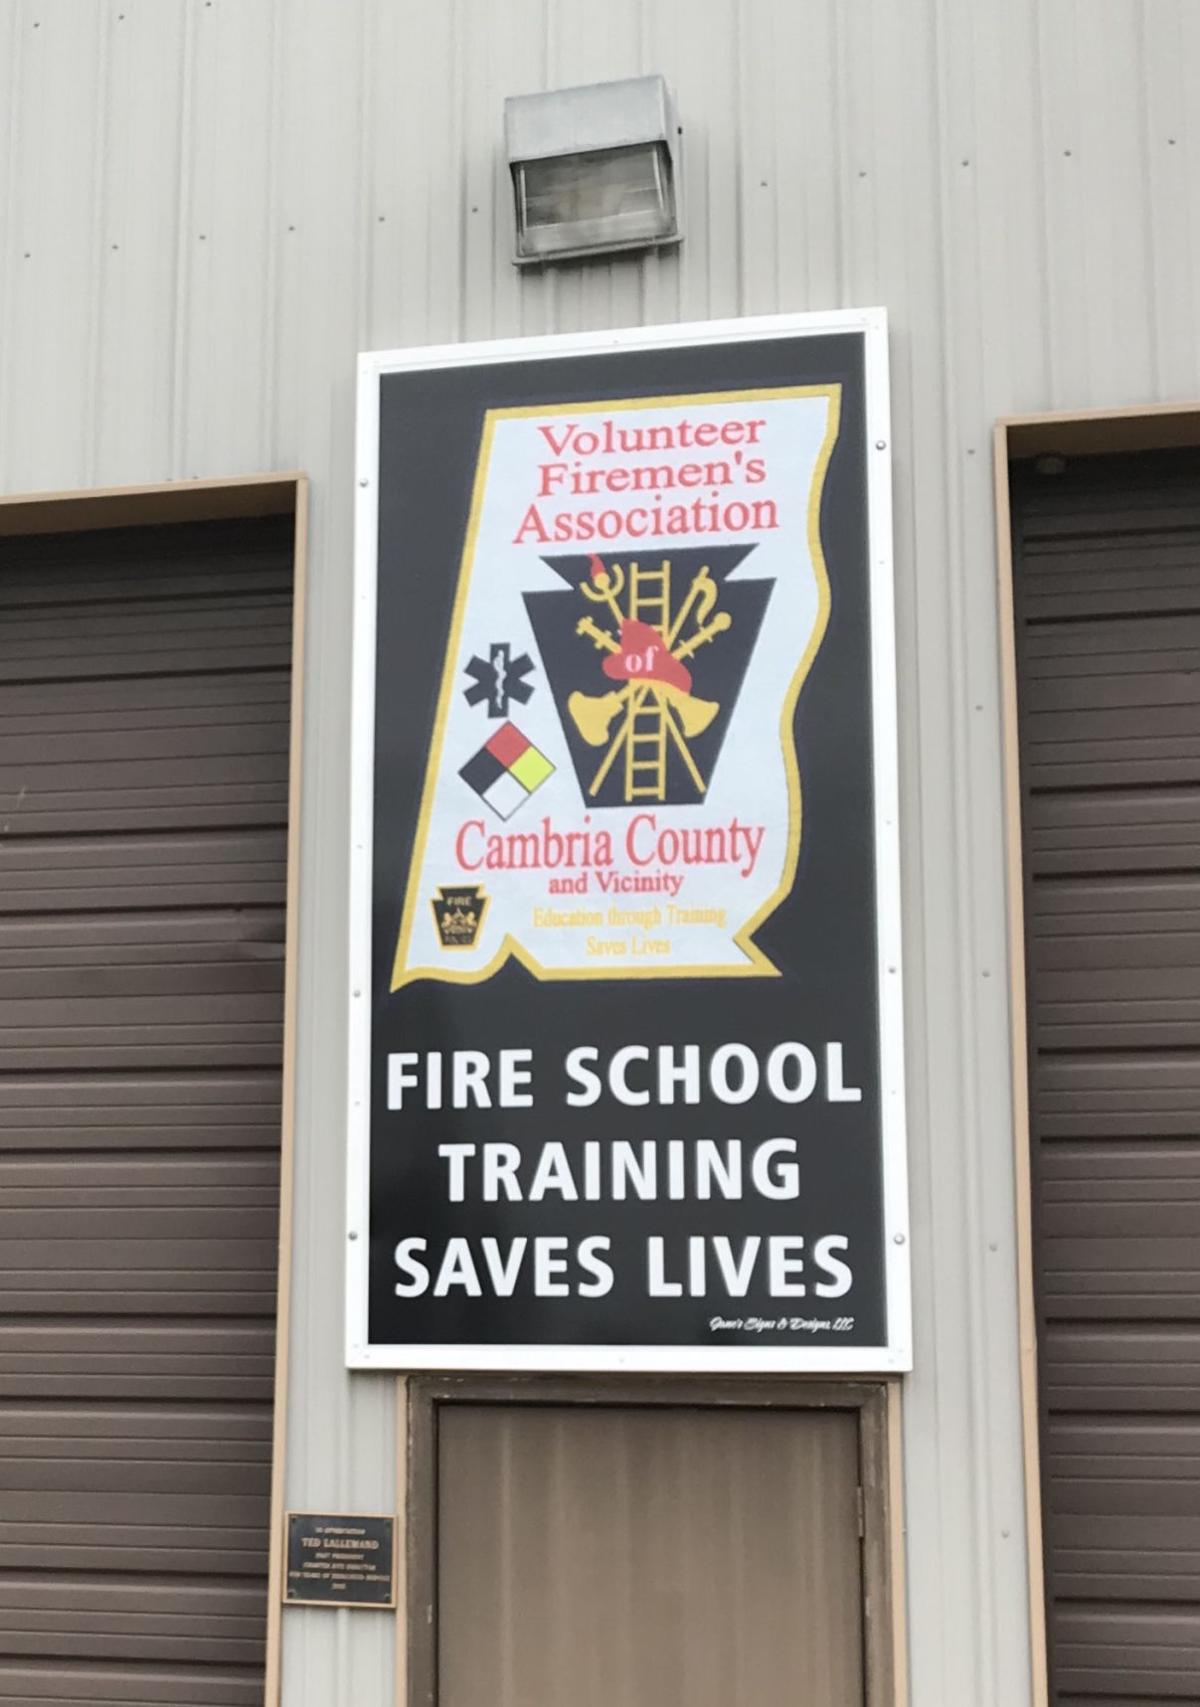 Cambria County Fire School